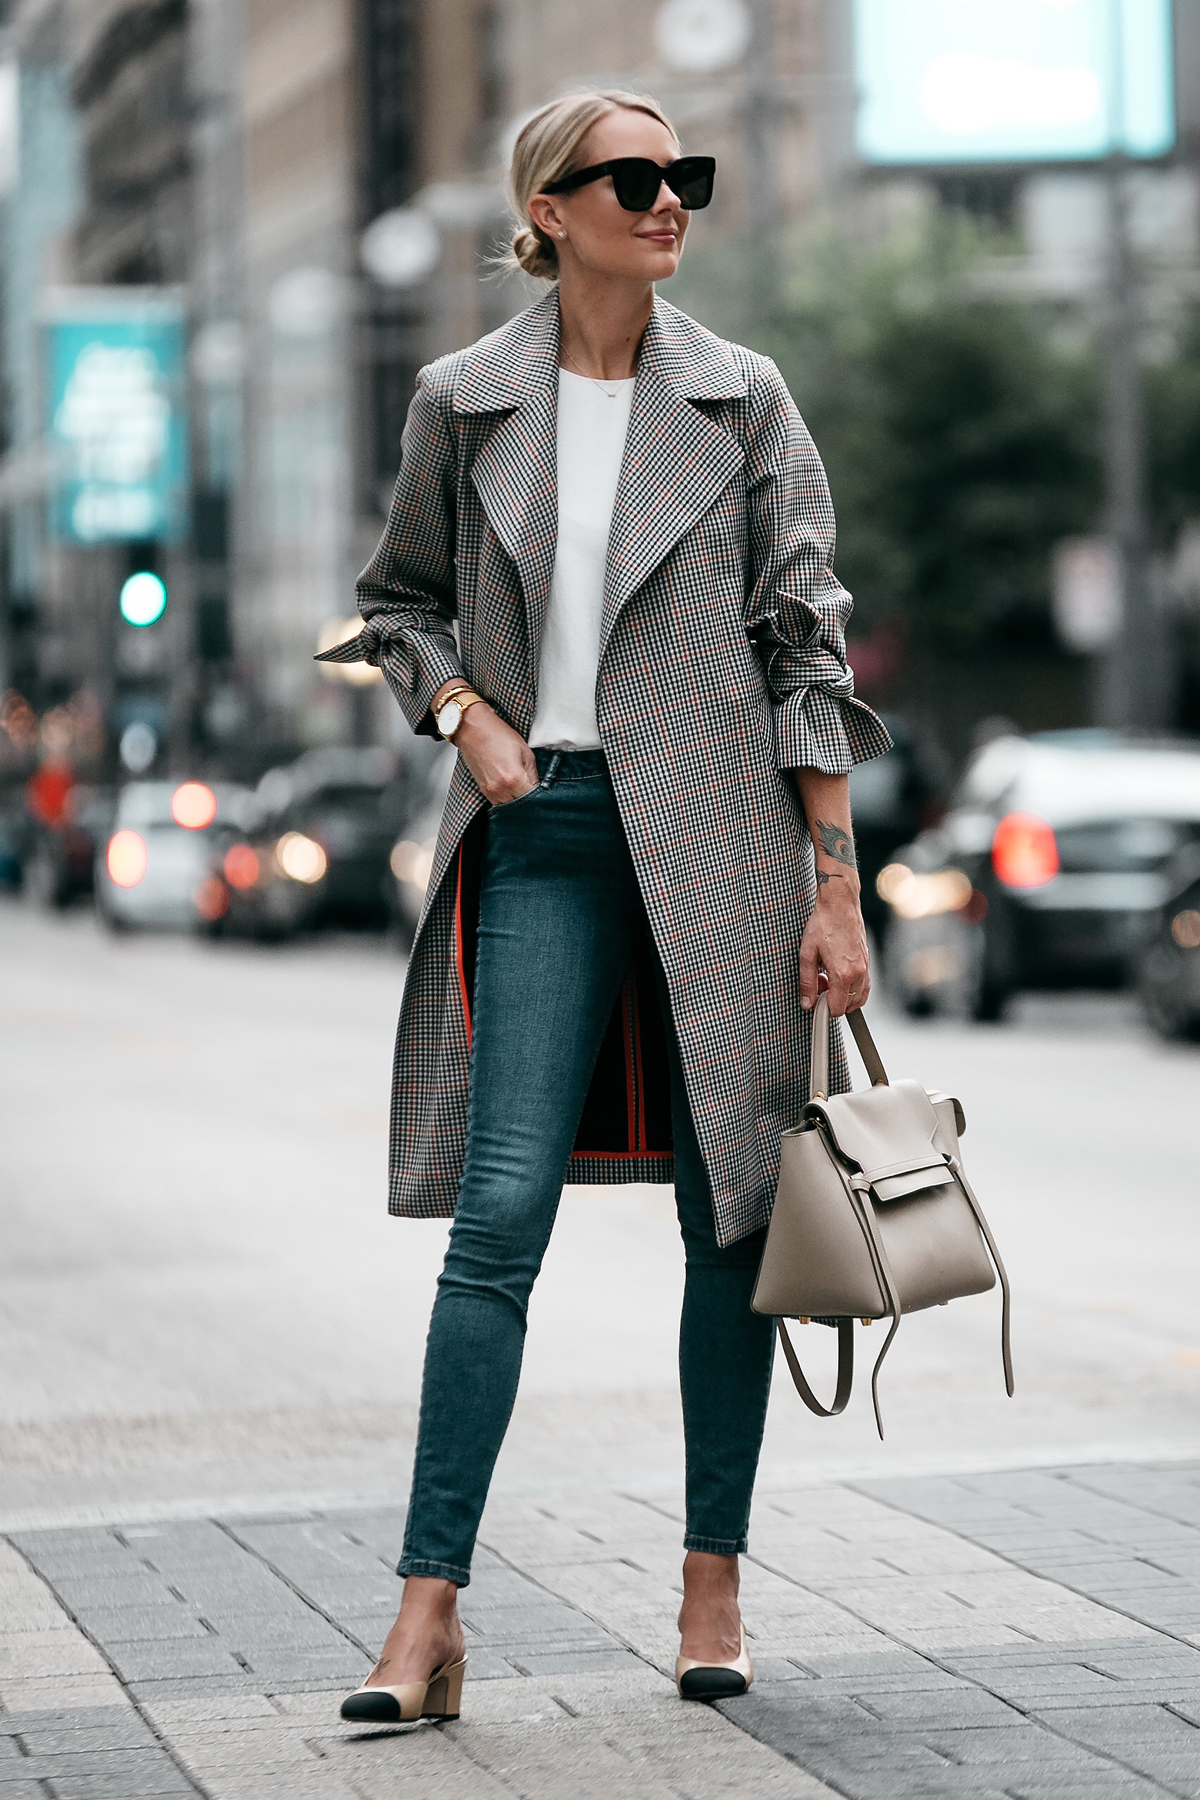 Blonde Woman Wearing Topshop Plaid Trench Coat Denim Skinny Jeans Outfit Chanel Slingbacks Celine Belt Bag Fashion Jackson Dallas Blogger Fashion Blogger Street Style